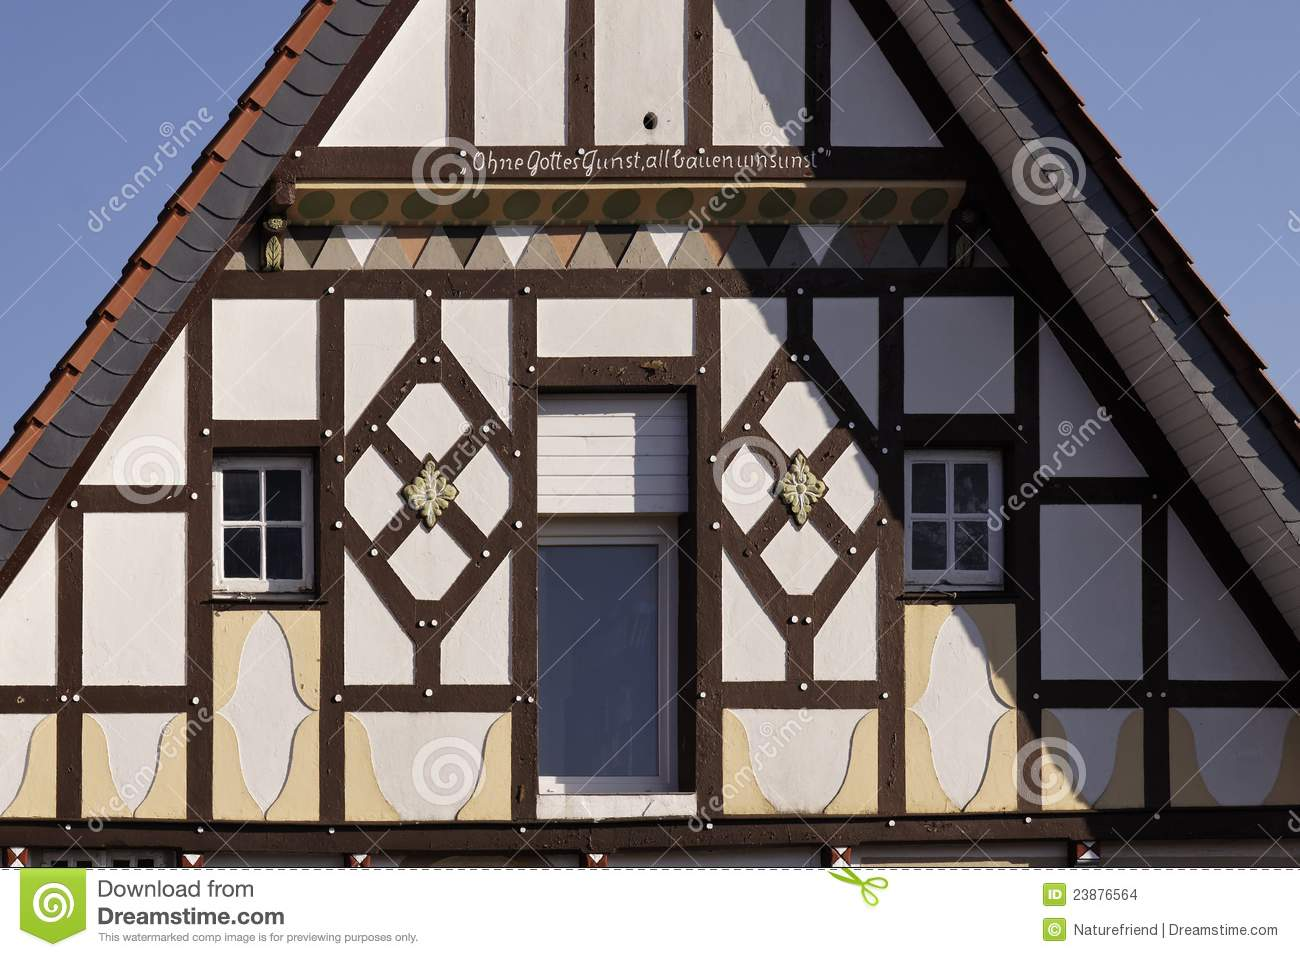 Half-timbered house in Dissen, Germany